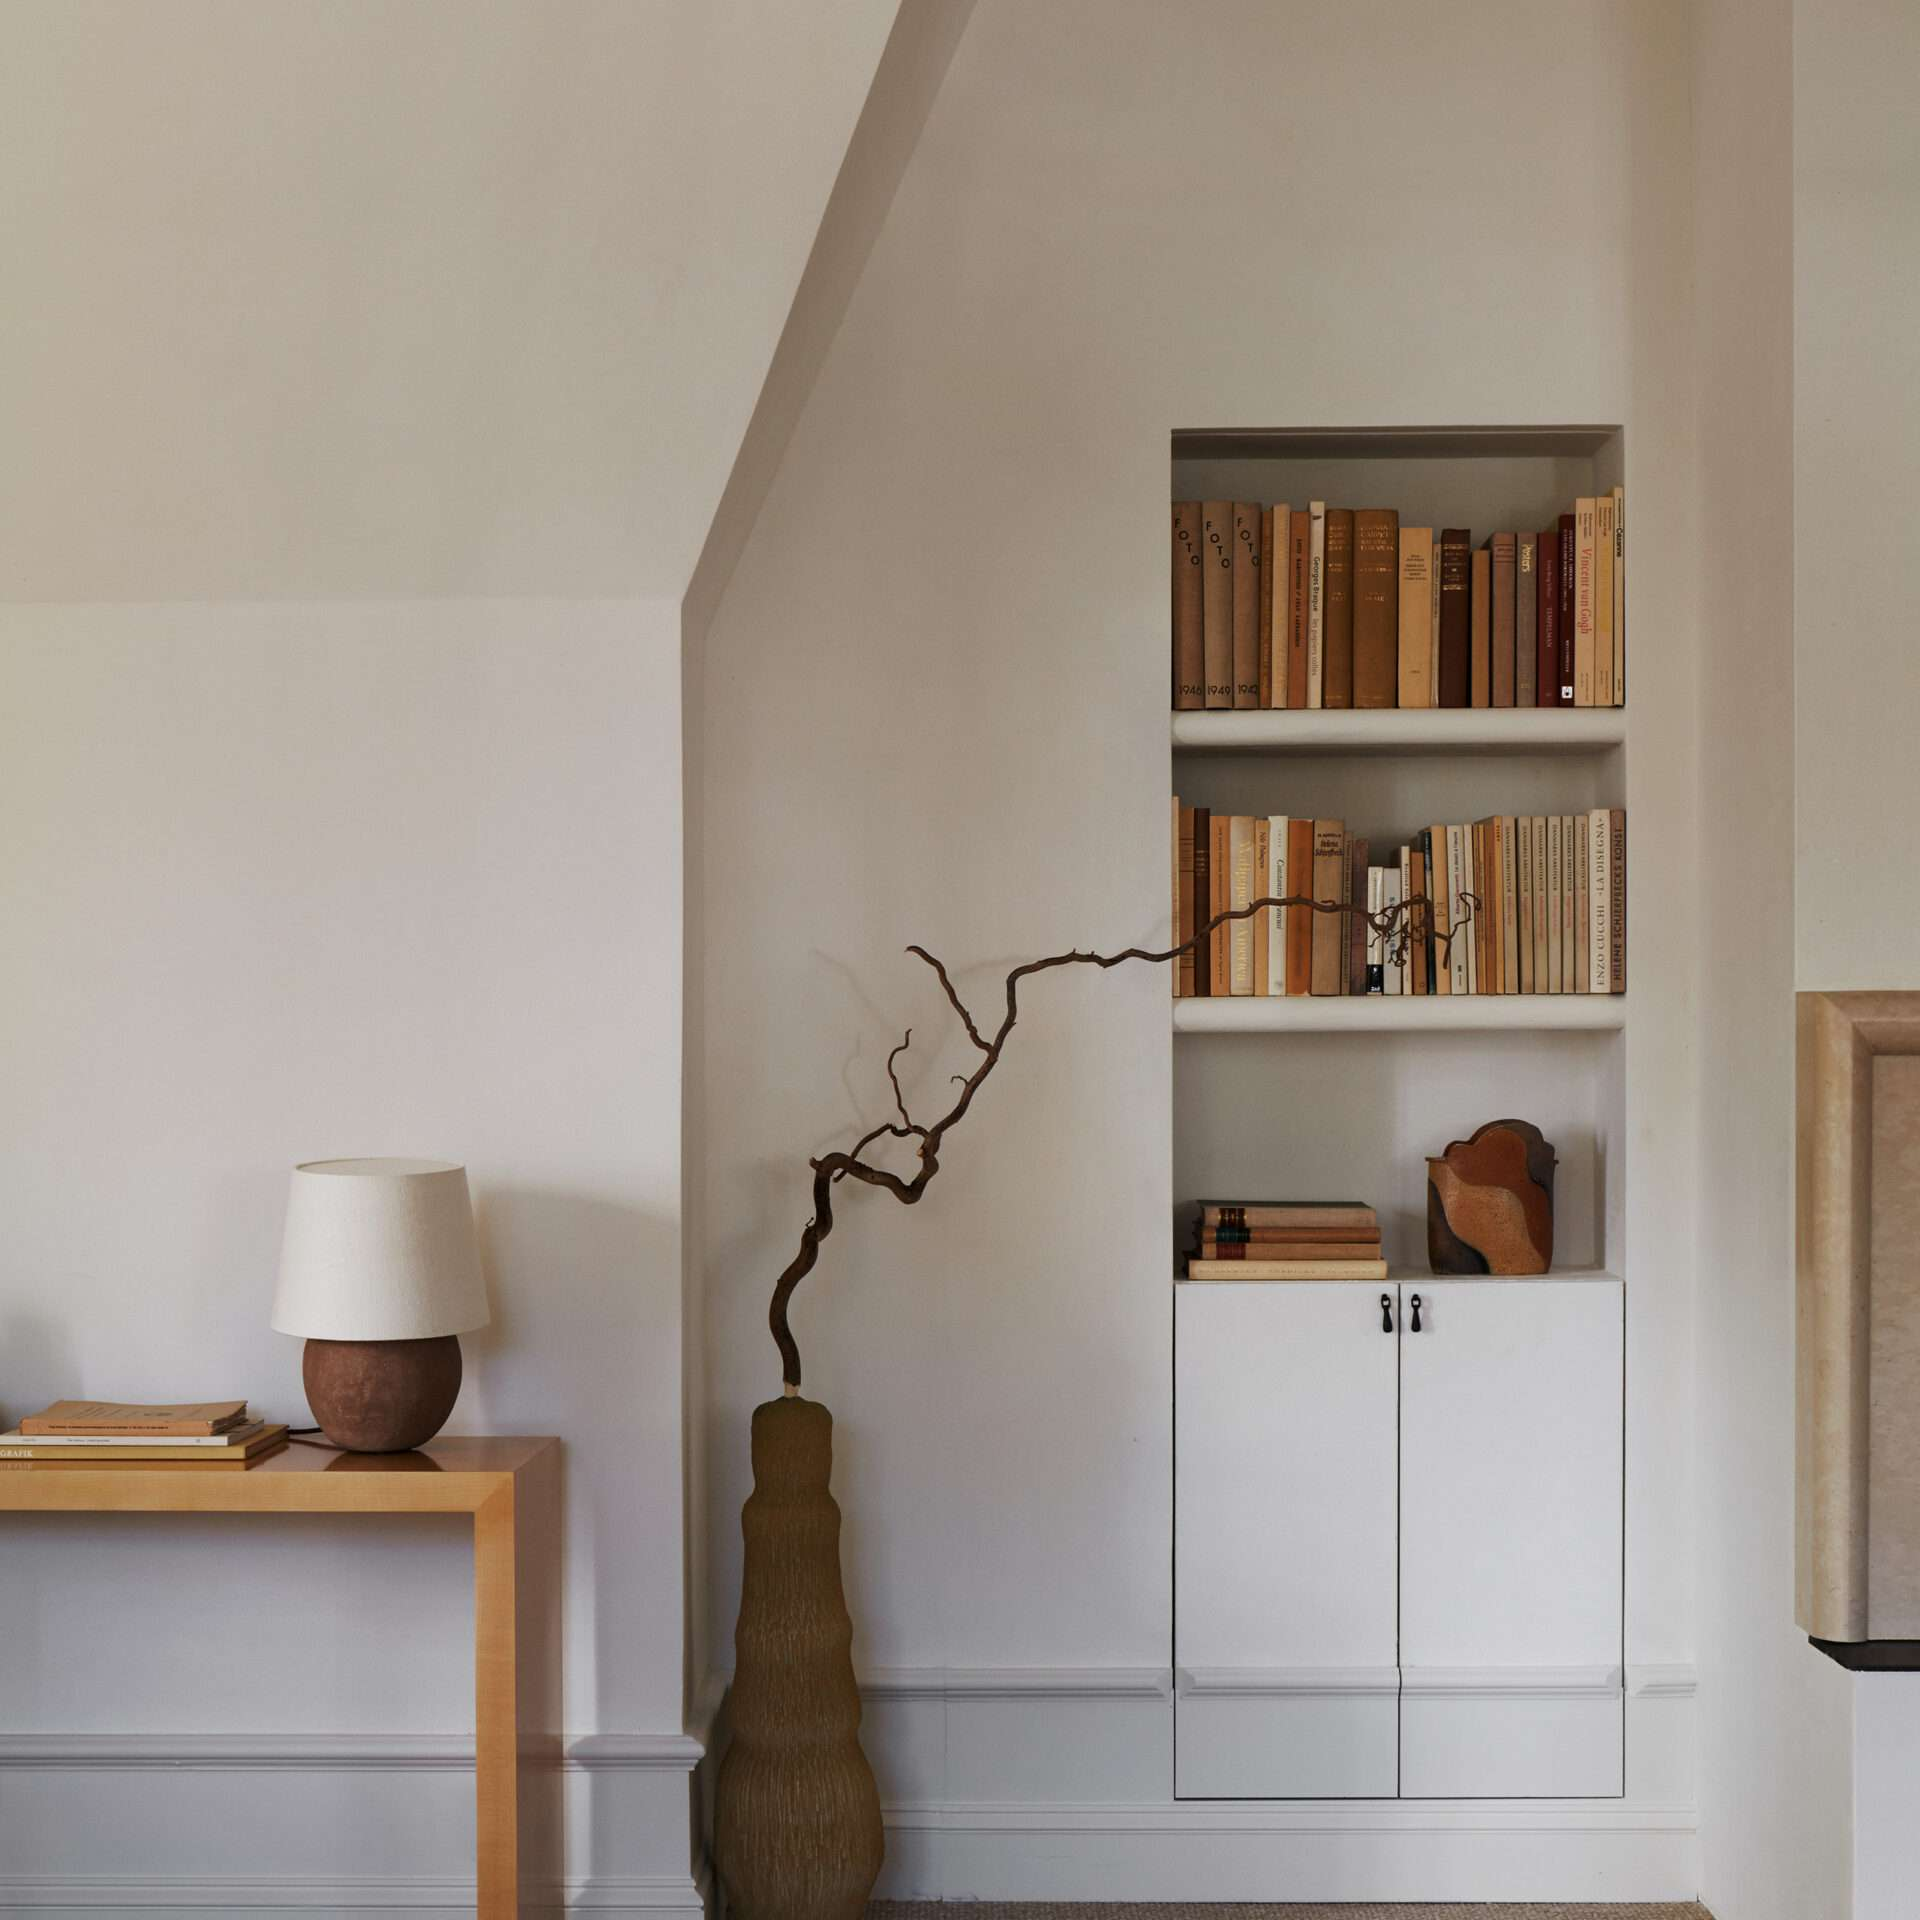 Books in a wall nook